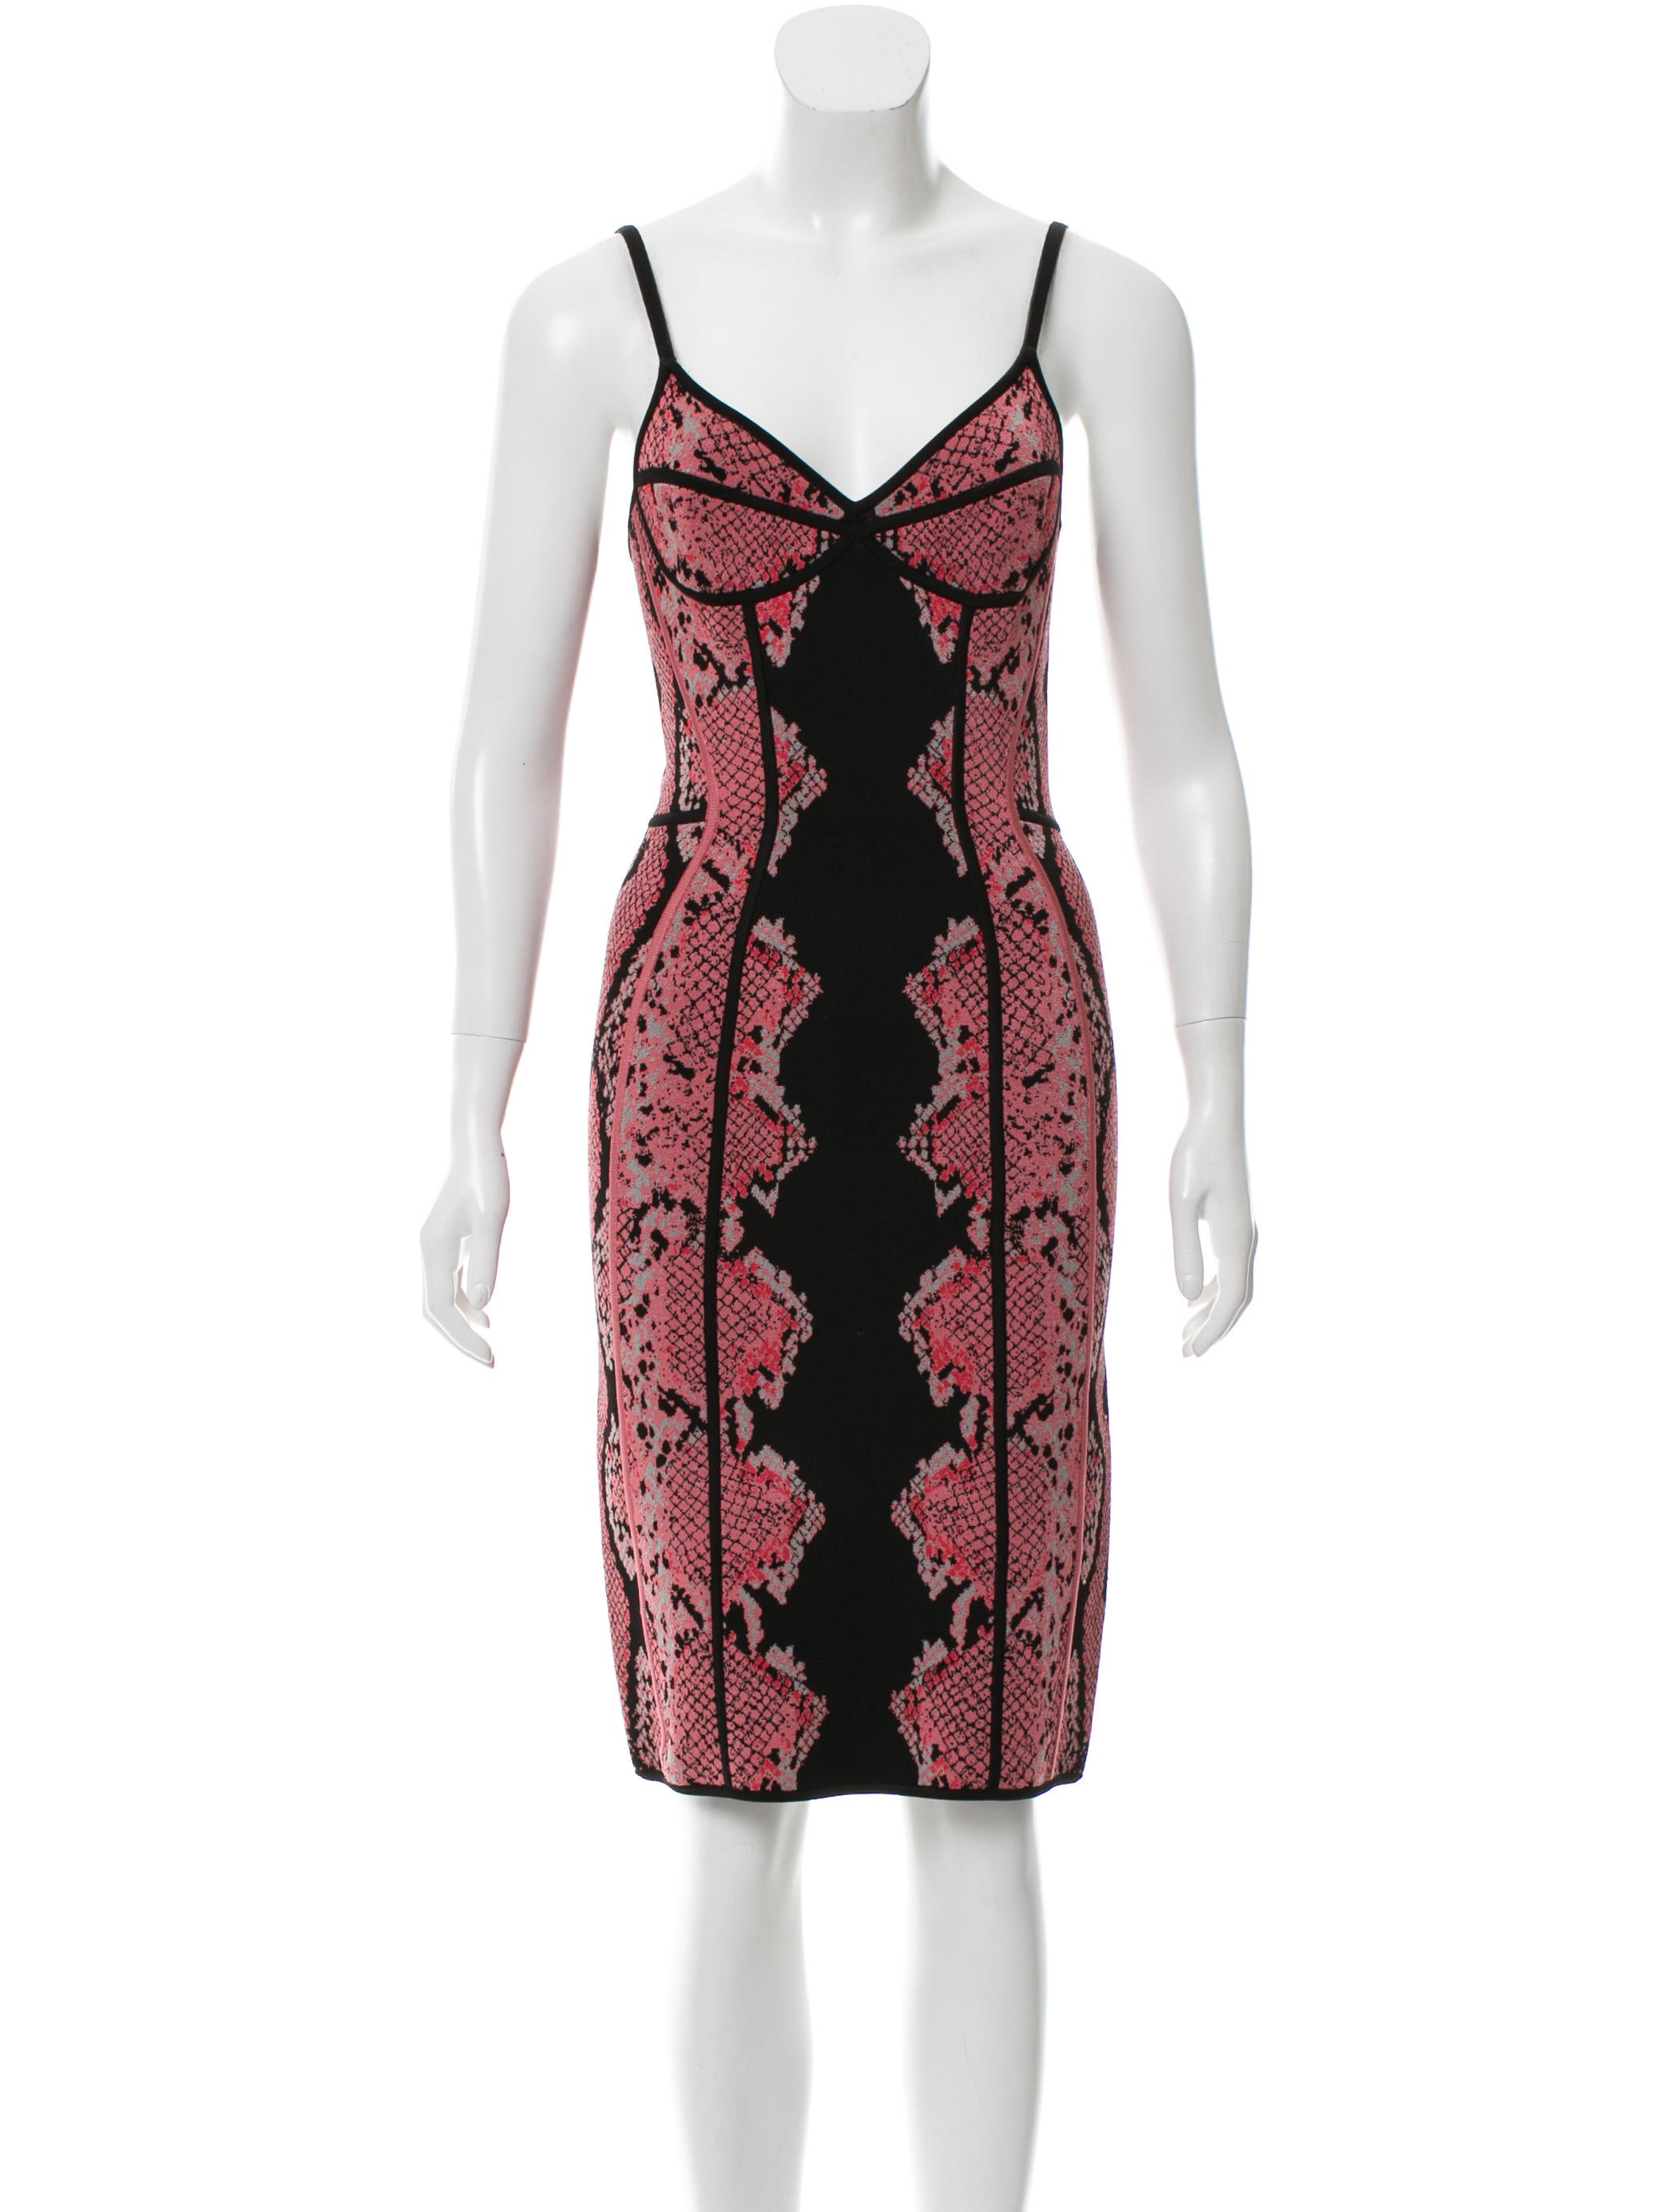 The renata burnout snake pattern dress in plays its part in our iconic dresses collection and is available to buy online at REISS.